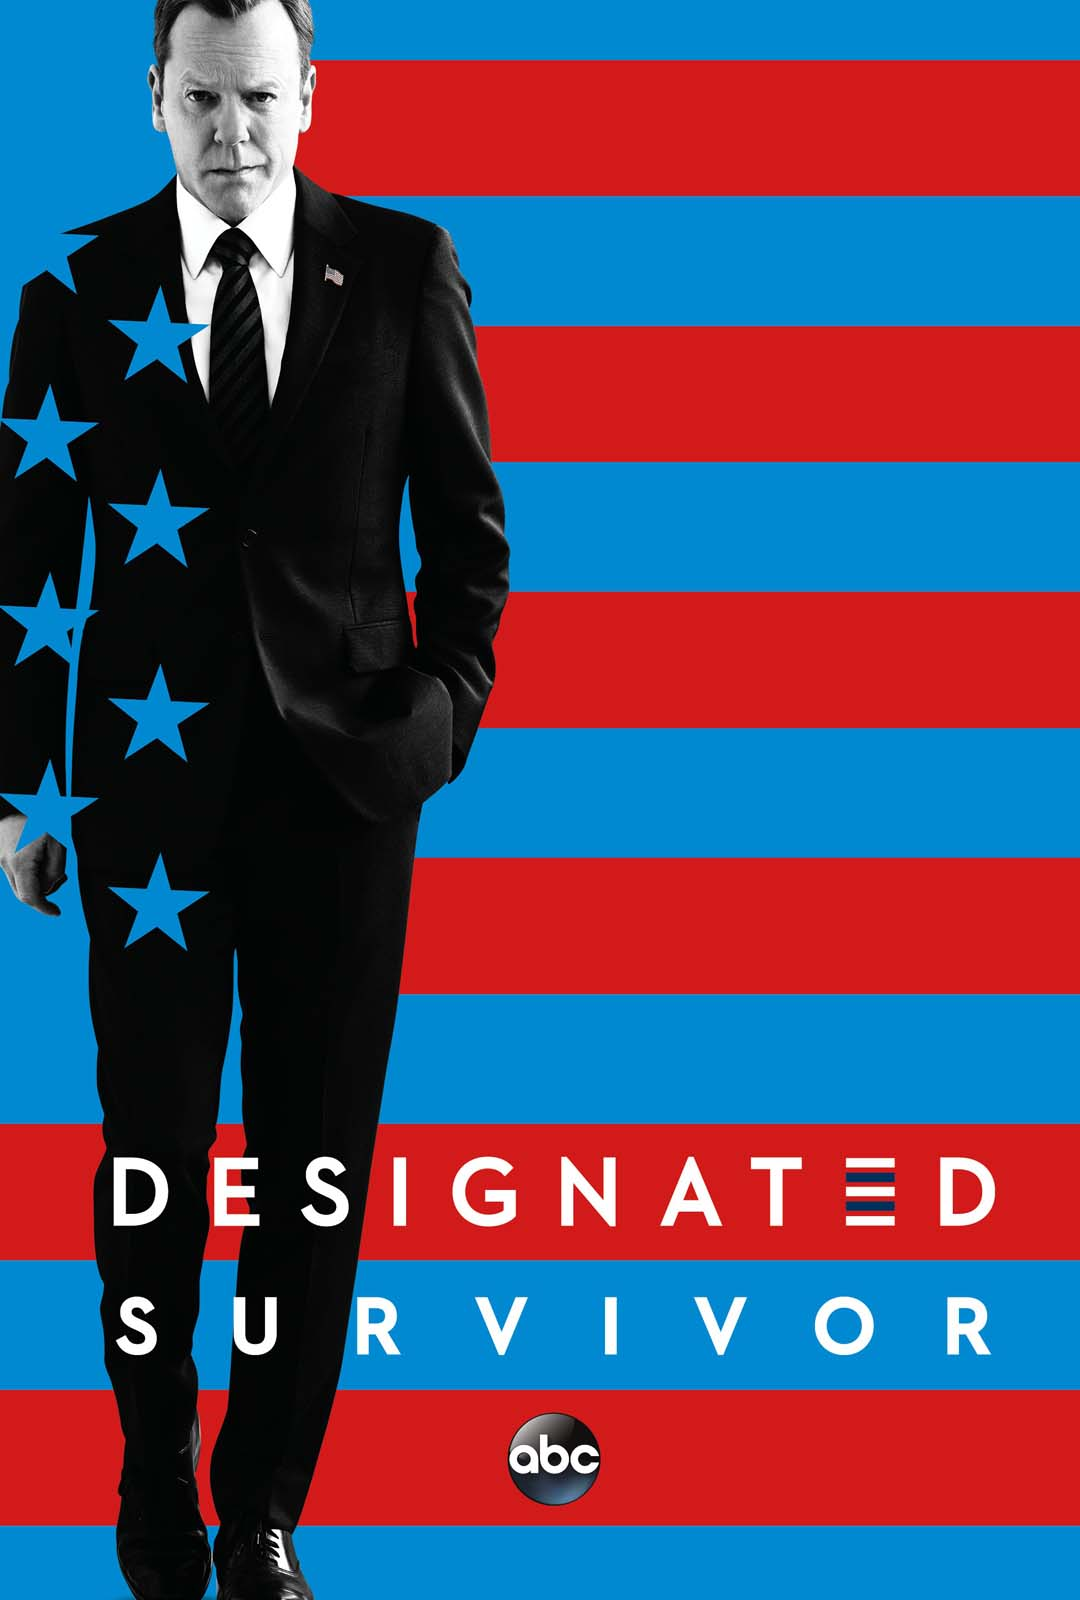 designated survivor saison 1 cpasbien